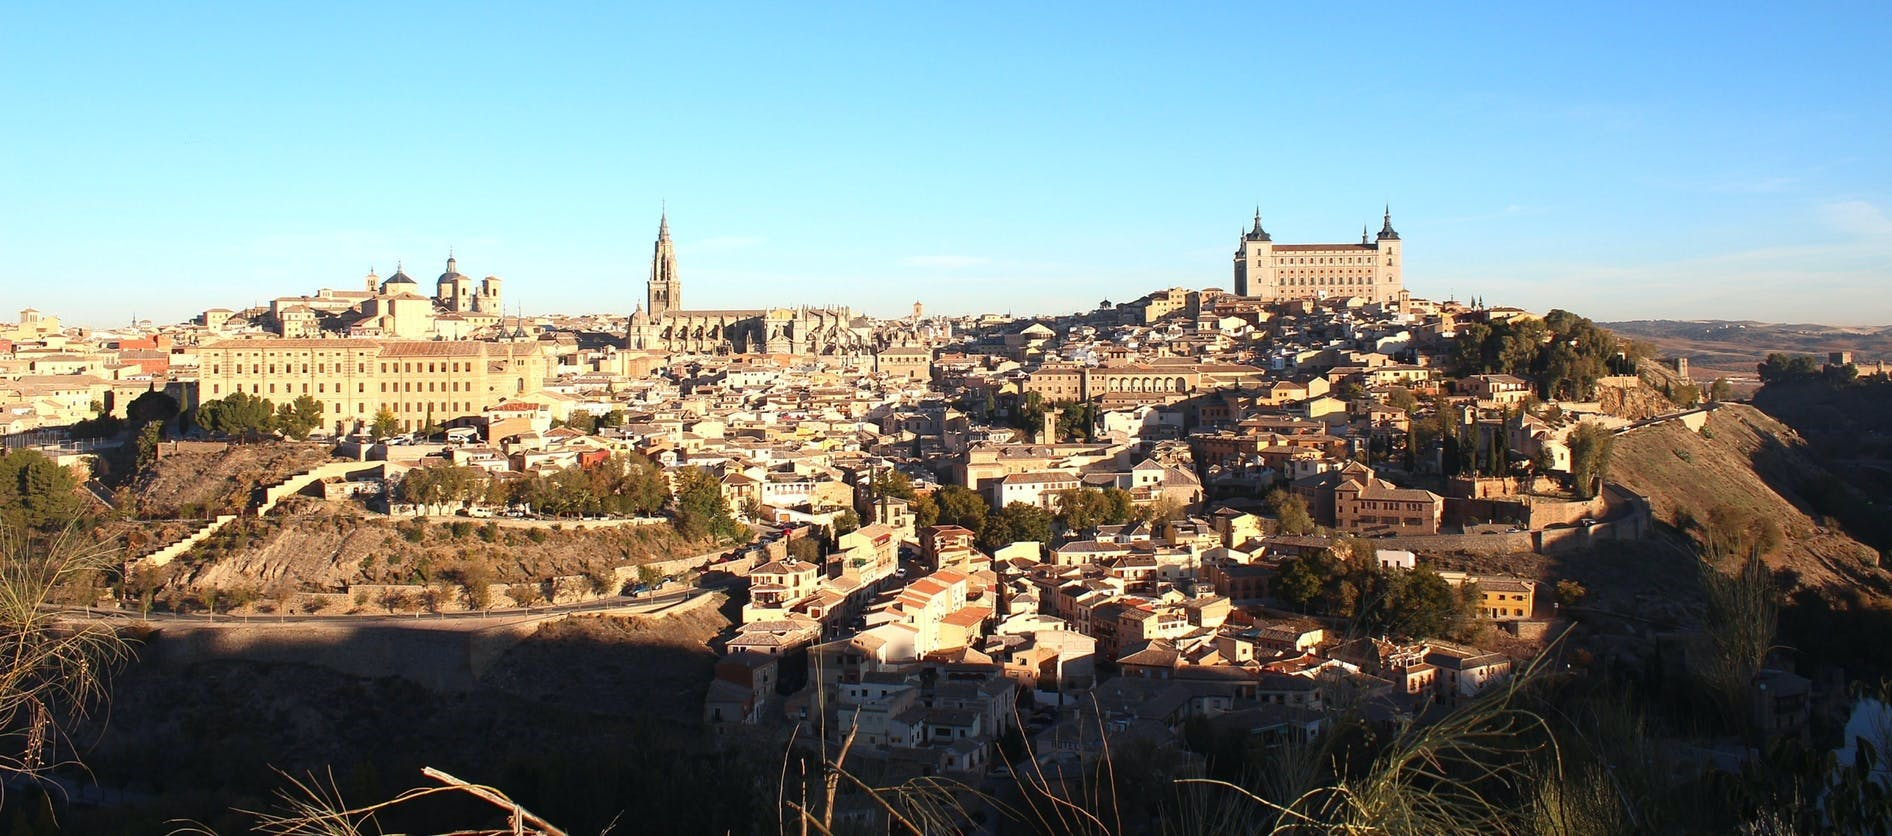 Toledo guided tour from Madrid with visit of a local winery, wine tasting and entrance to 7 monuments